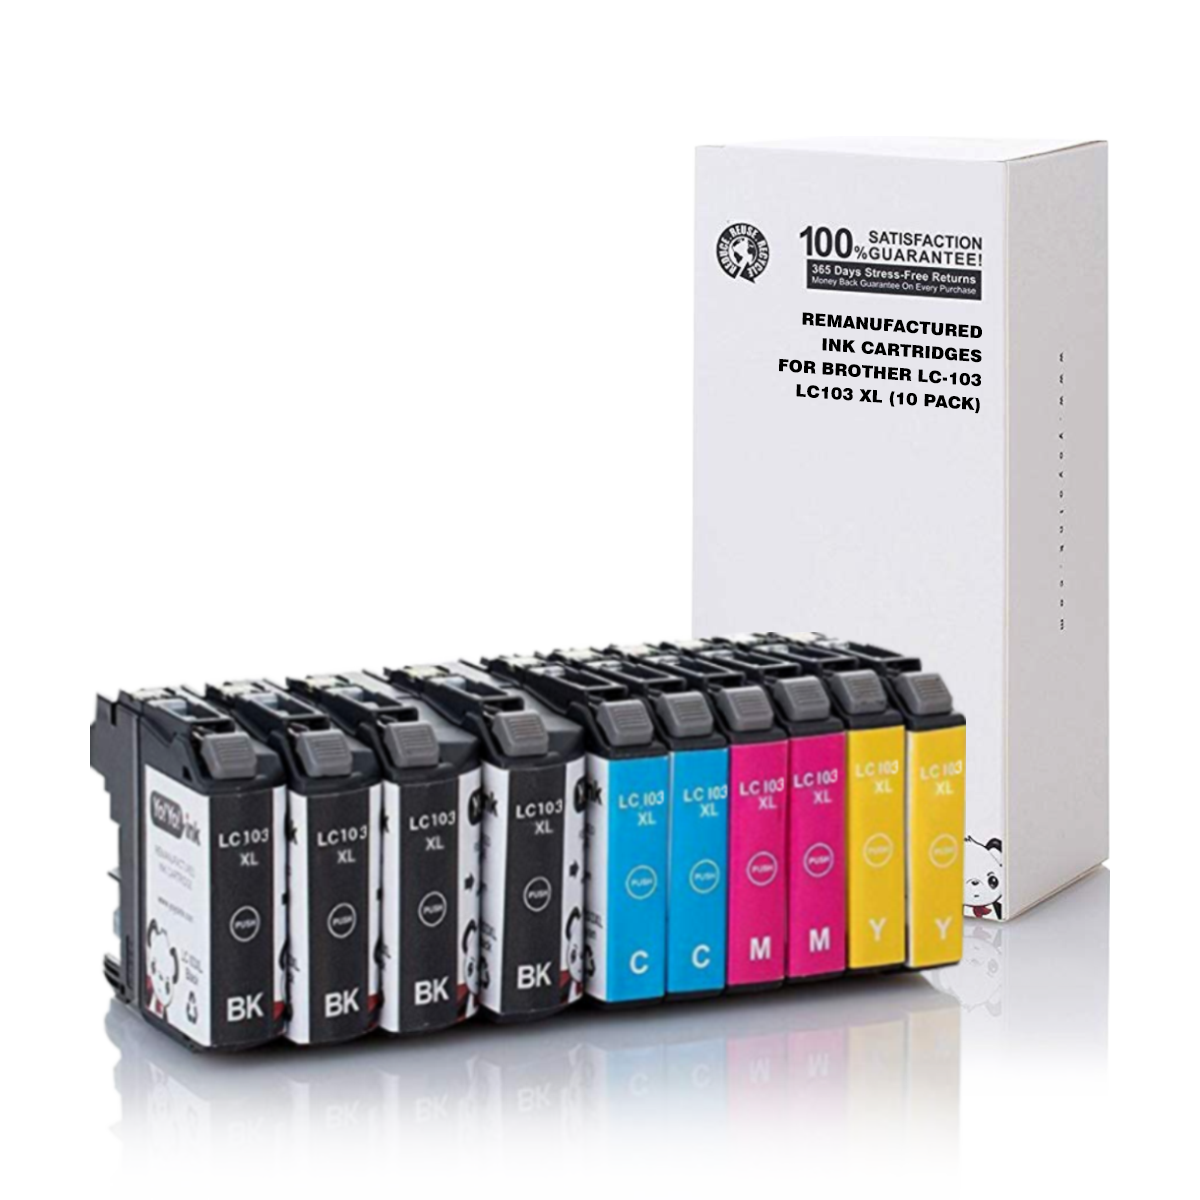 Brother LC103 Printer Ink Cartridges